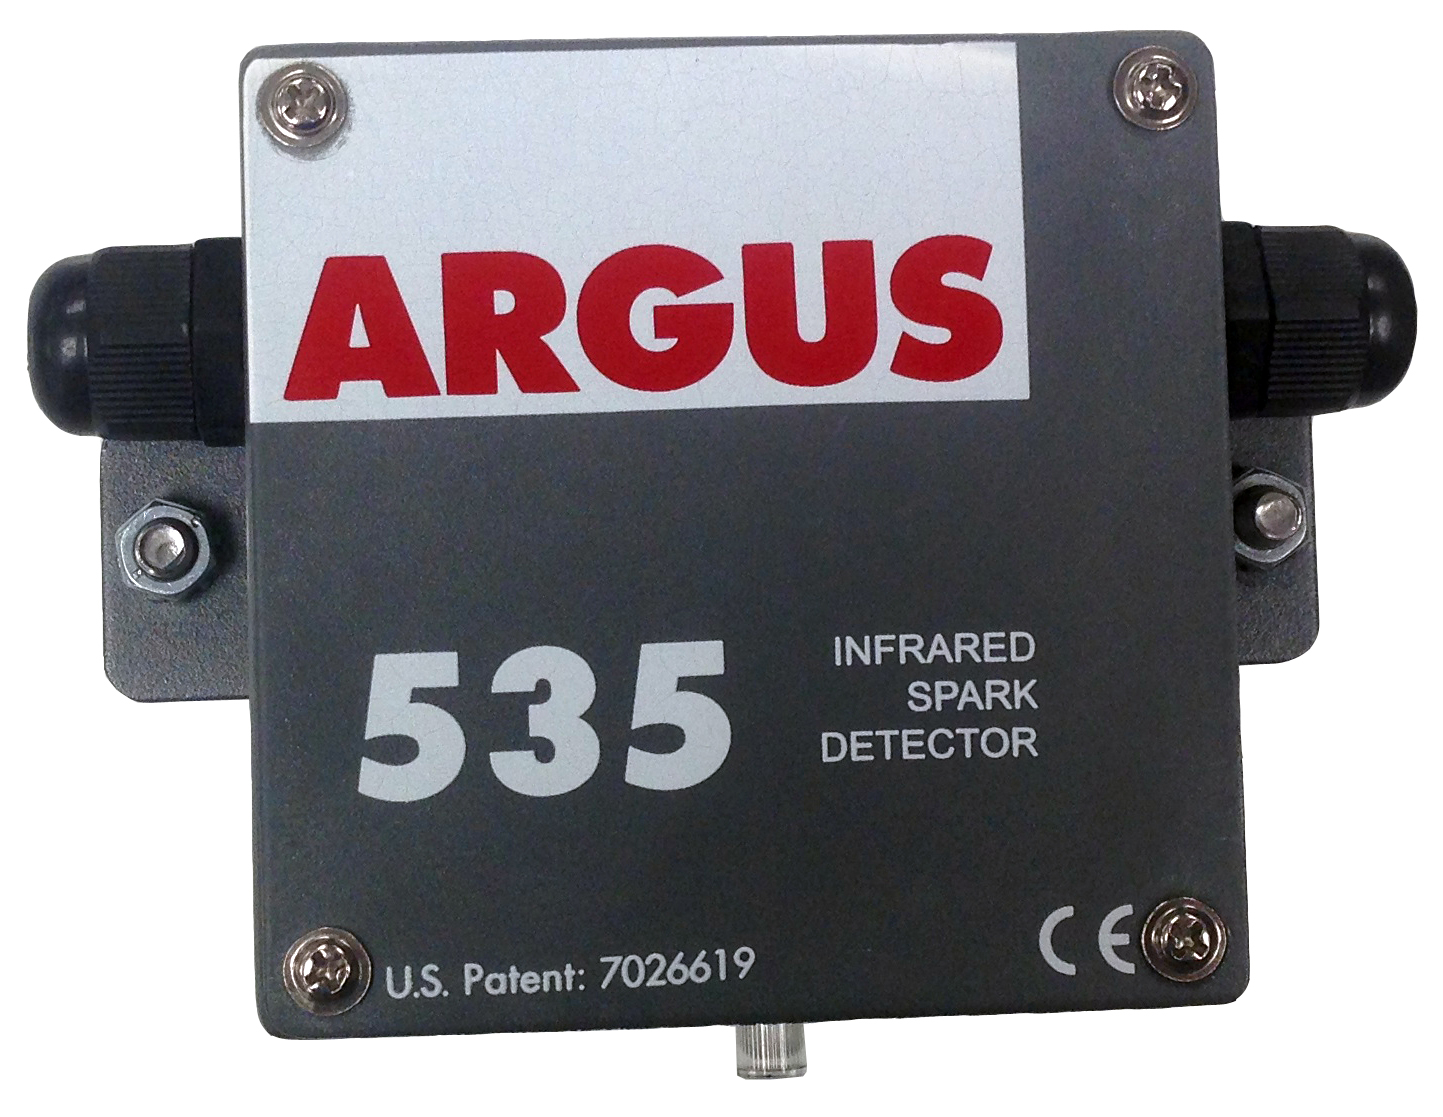 Check out the latest Argus 535 Spark Detector!